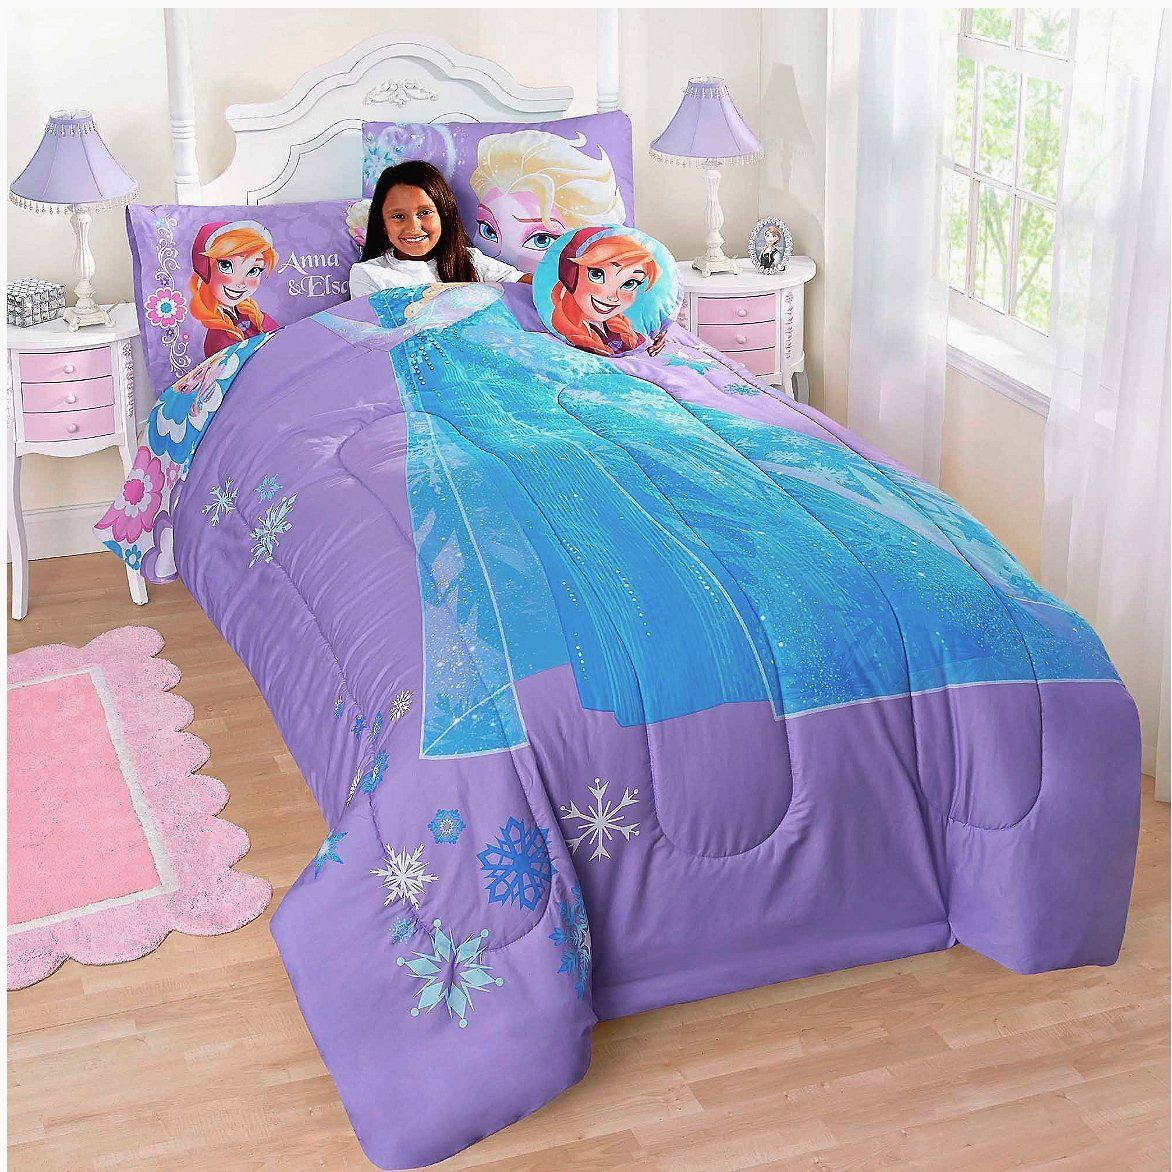 Disney Frozen Me Full Comforter Sham Sheet Set Decorative Pillow And Bonus Glitter Stickers 9 Pi Frozen Themed Bedroom Frozen Bedroom Frozen Bedroom Decor